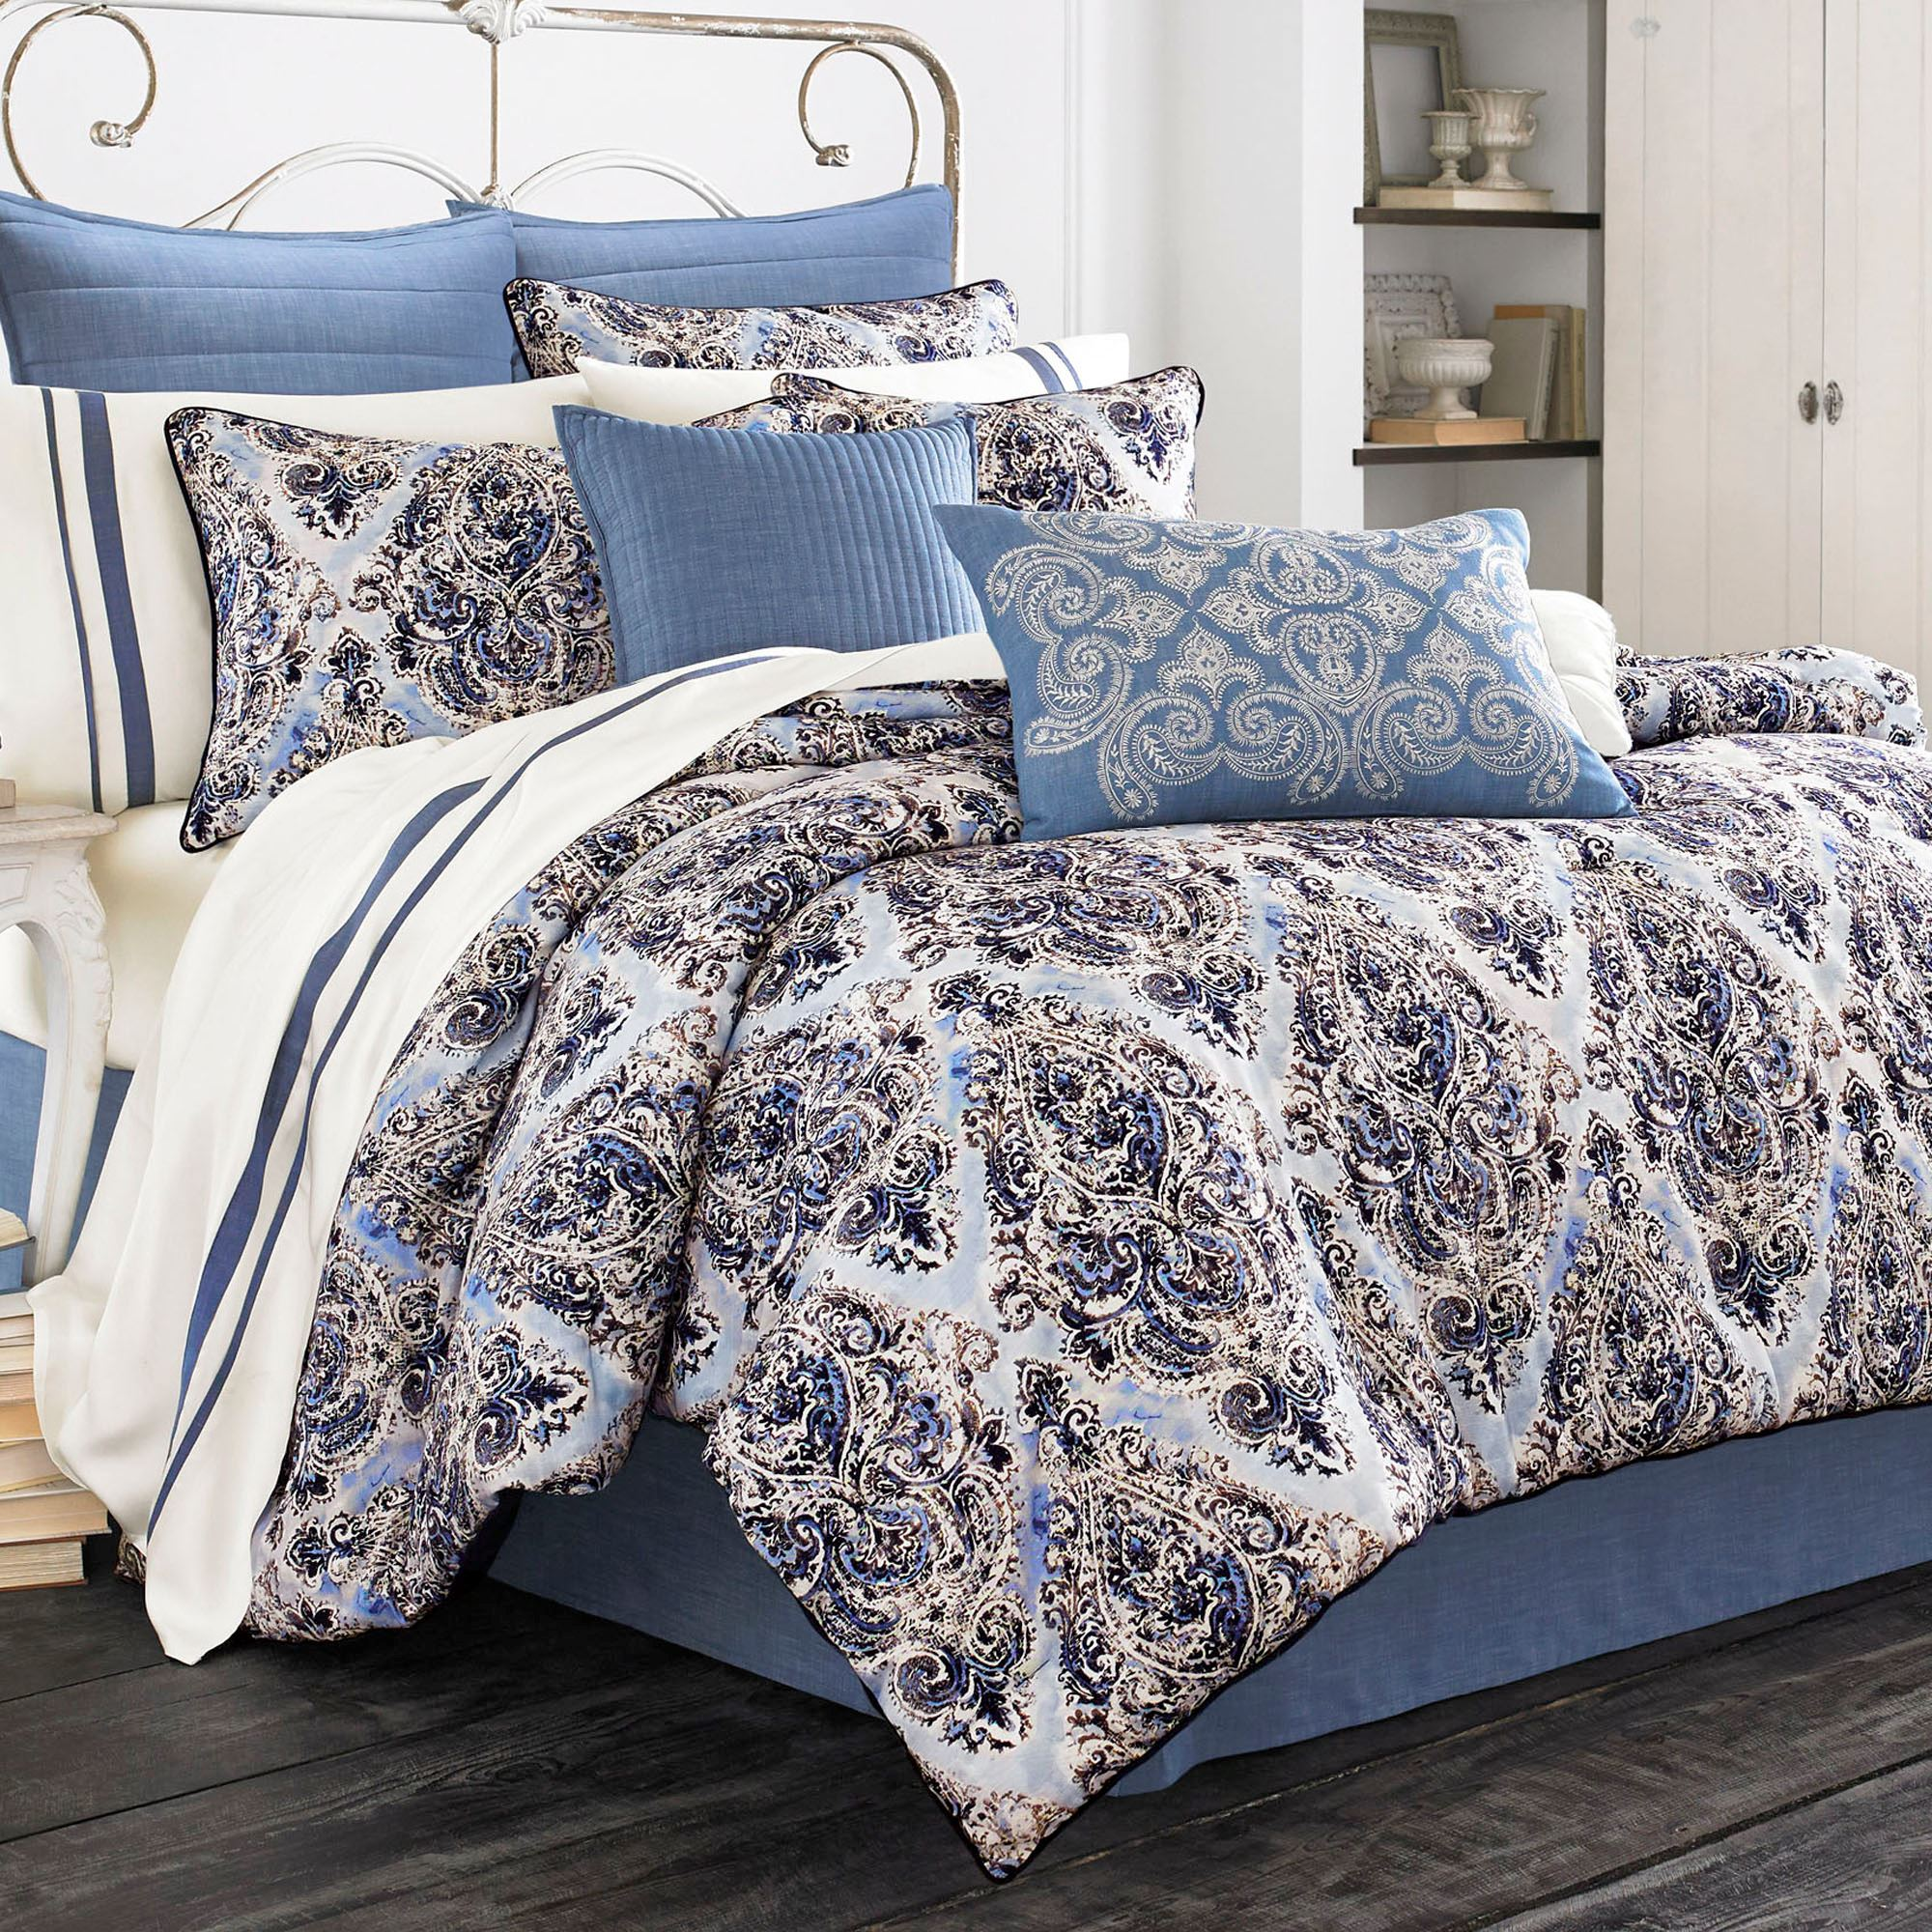 Santorini Indigo Medallion Comforter Bedding By Piper Amp Wright